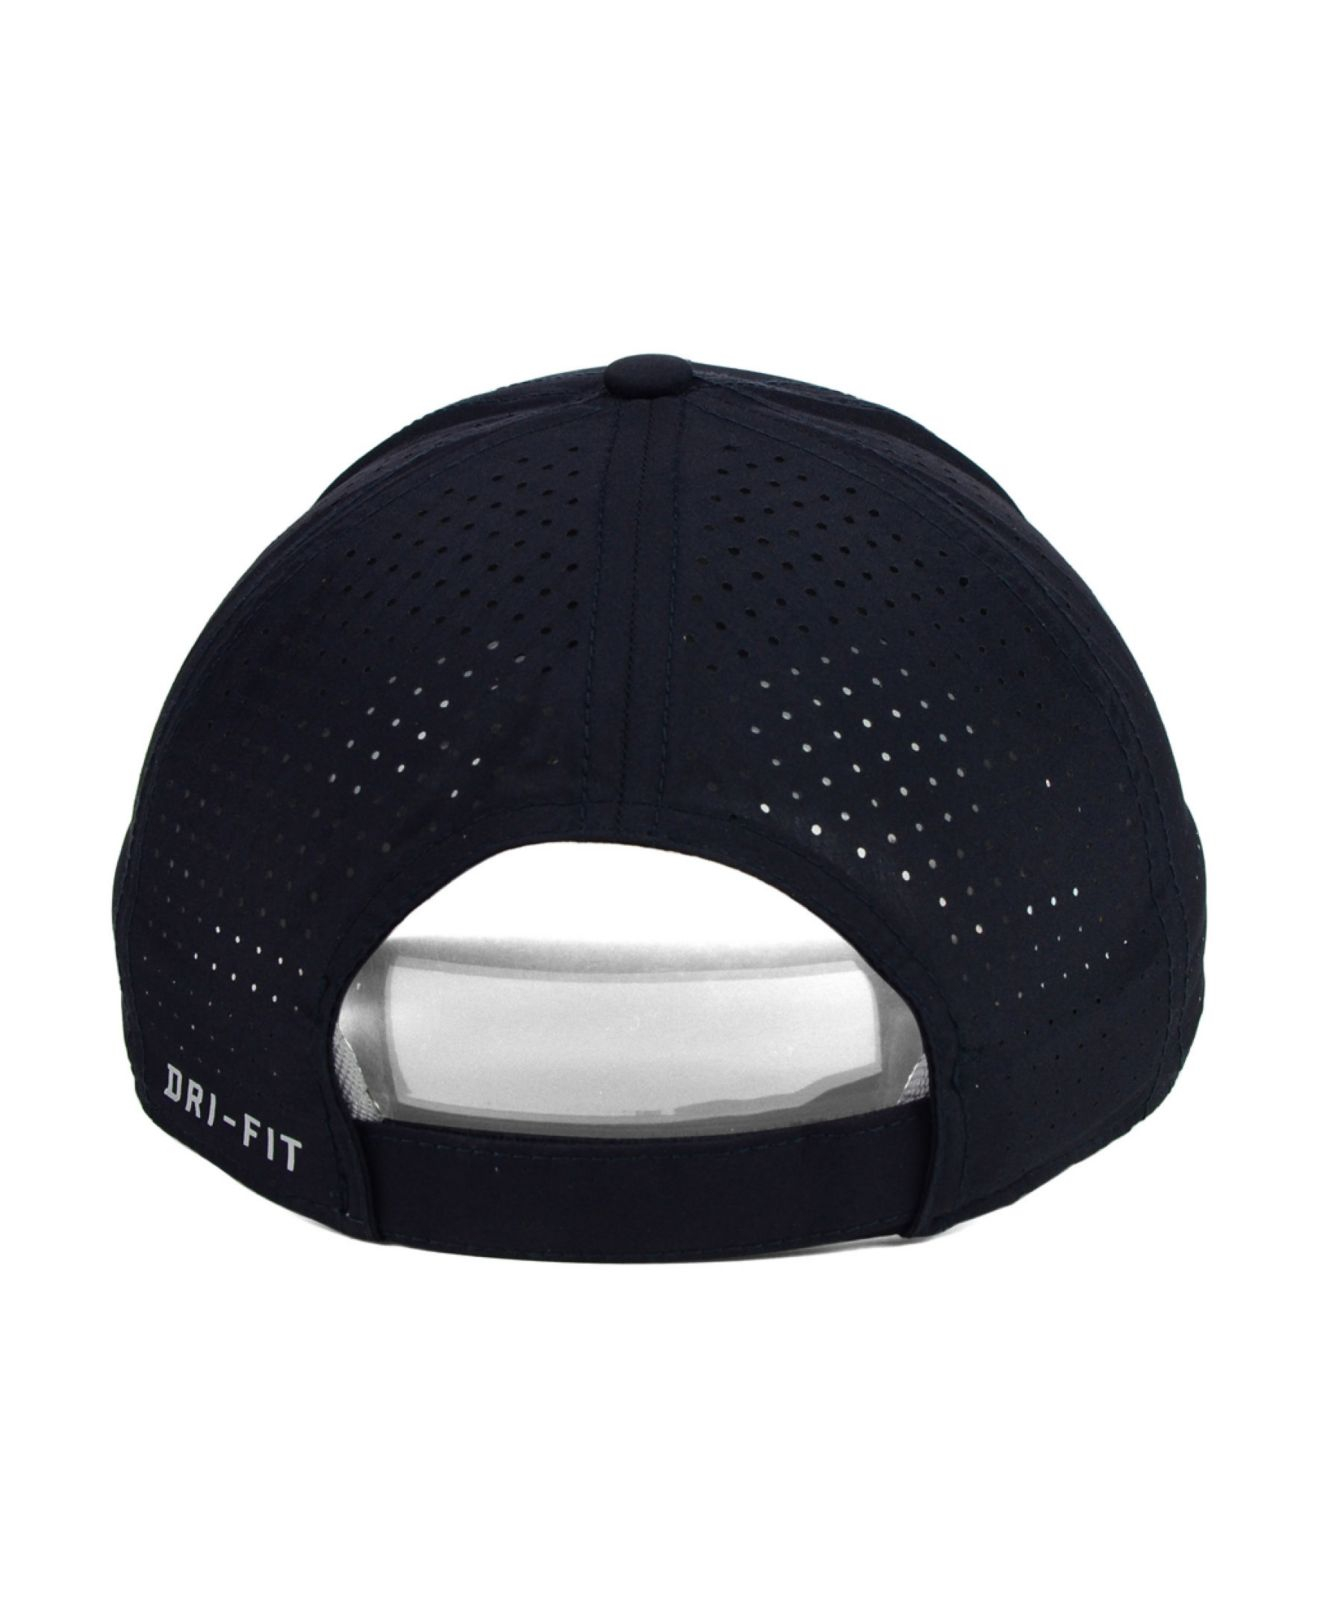 outlet store d95b9 2c3b7 ... mlb dri fit featherlight adjustable cap 3062a a8c22  new zealand lyst nike  detroit tigers featherlite cap in blue for men c372a fb5b3